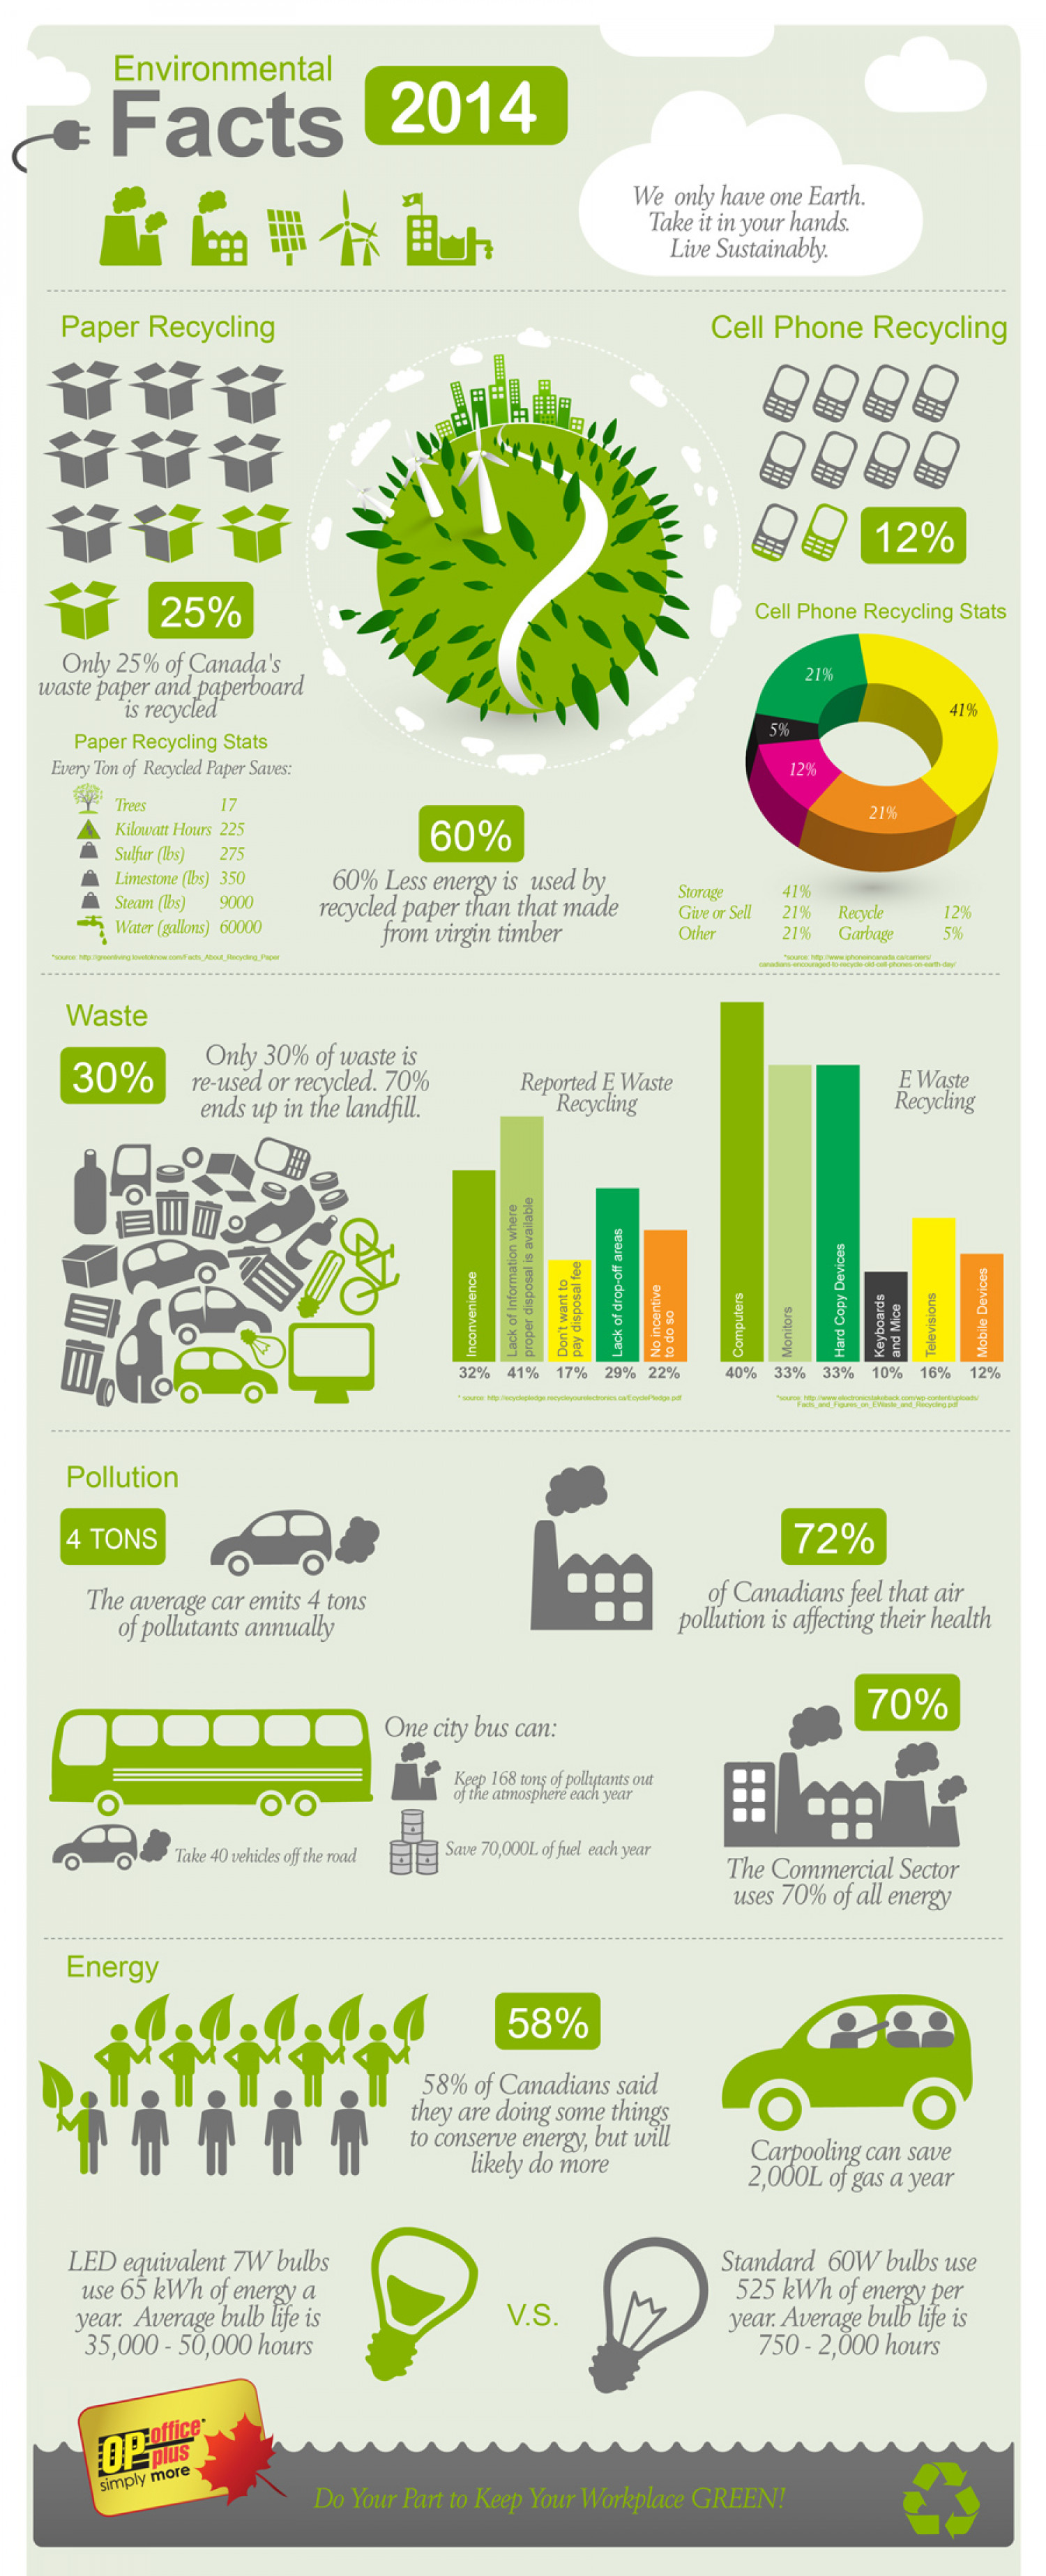 Earth day facts 2014 visual earth day facts 2014 infographic ccuart Image collections